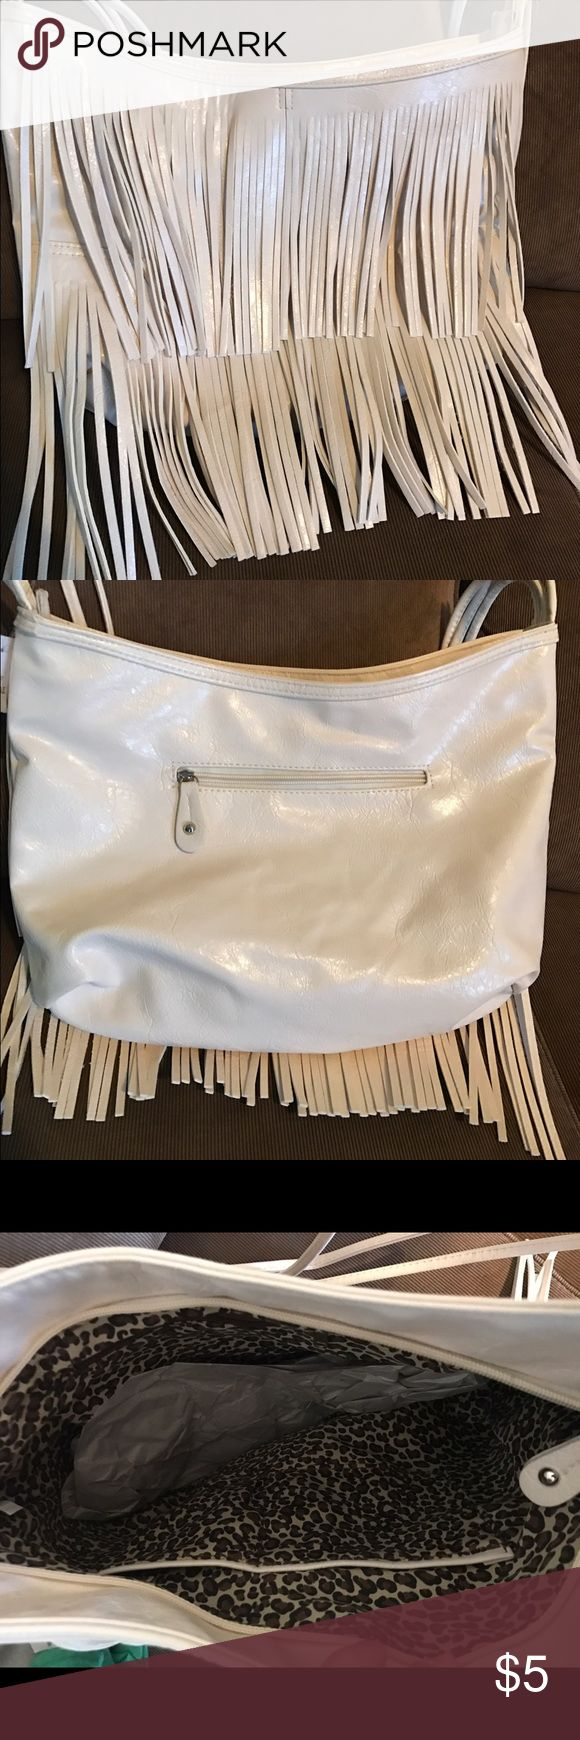 "Body Central white fringe purse NWT cream-colored fringe purse. 15"" wide around 11"" long. Let me know if you have any questions! Body Central Bags Shoulder Bags"